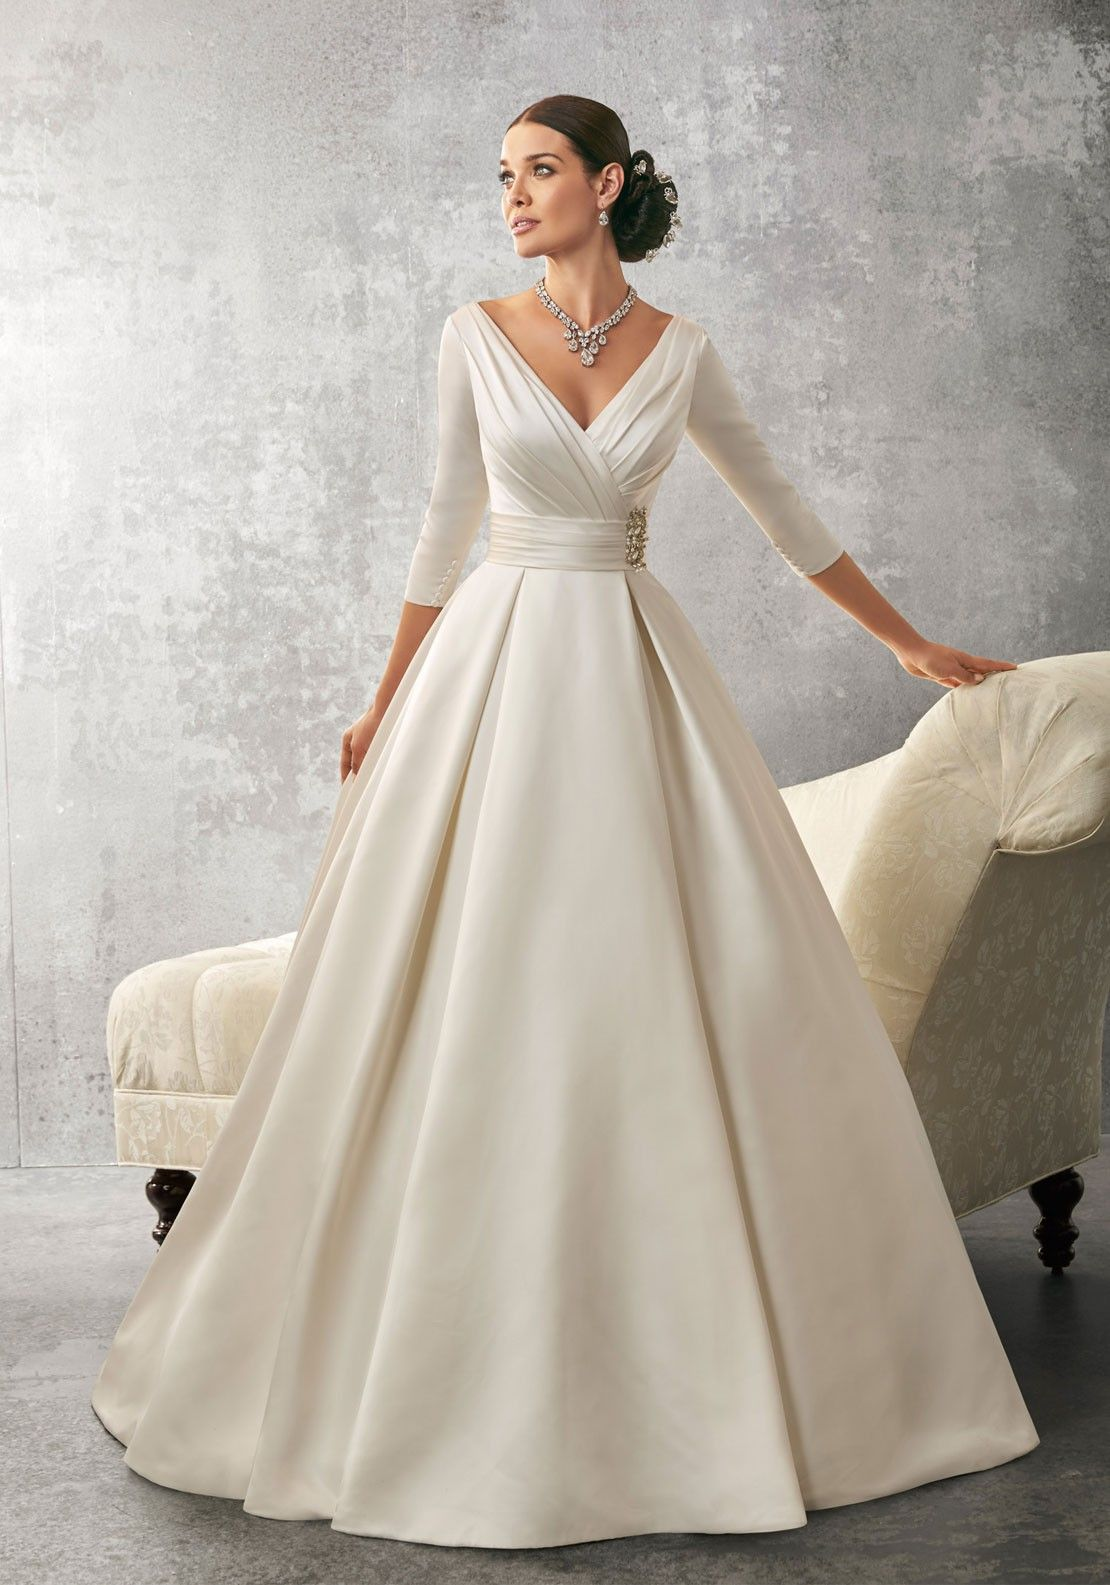 Wedding dress idea white dupion silk fabric use covered buttons